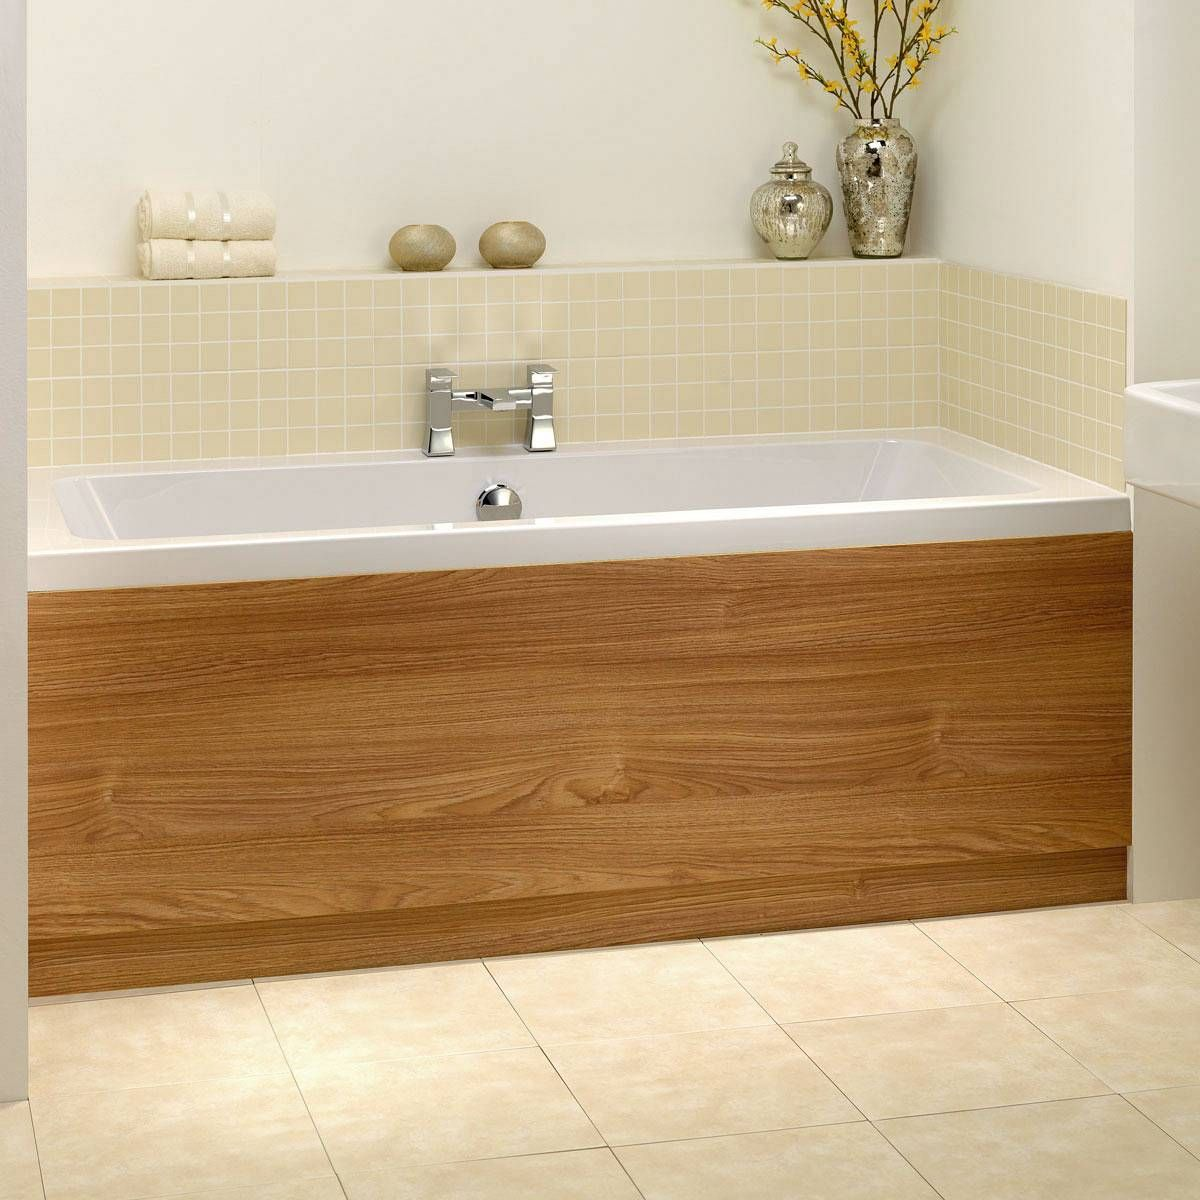 oak wooden bath panel 1700 victoria 49 or in white matches the sink units babashkin. Black Bedroom Furniture Sets. Home Design Ideas